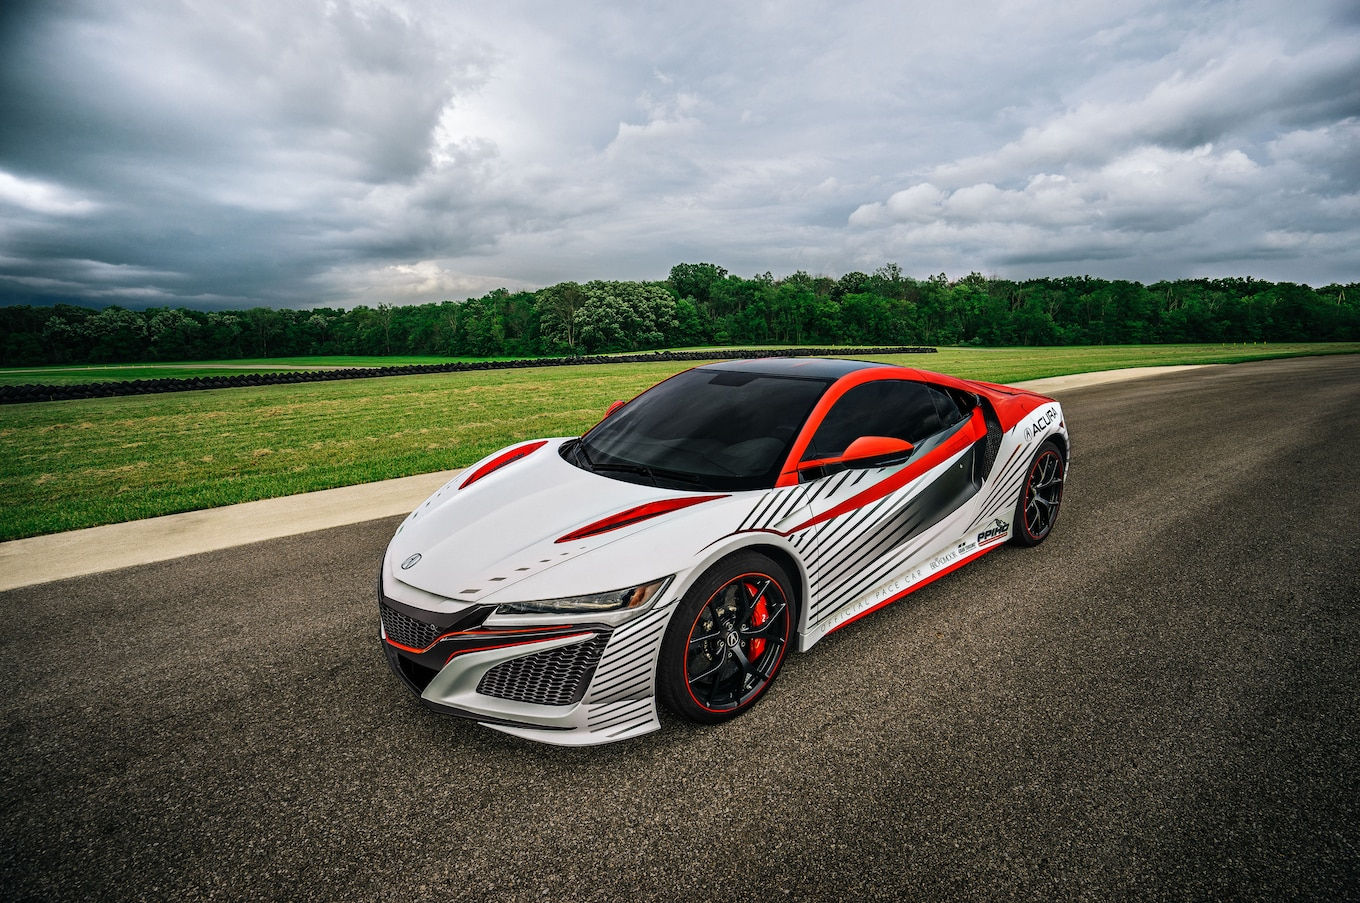 New Acura NSX to Pace Pikes Peak International Hill Climb